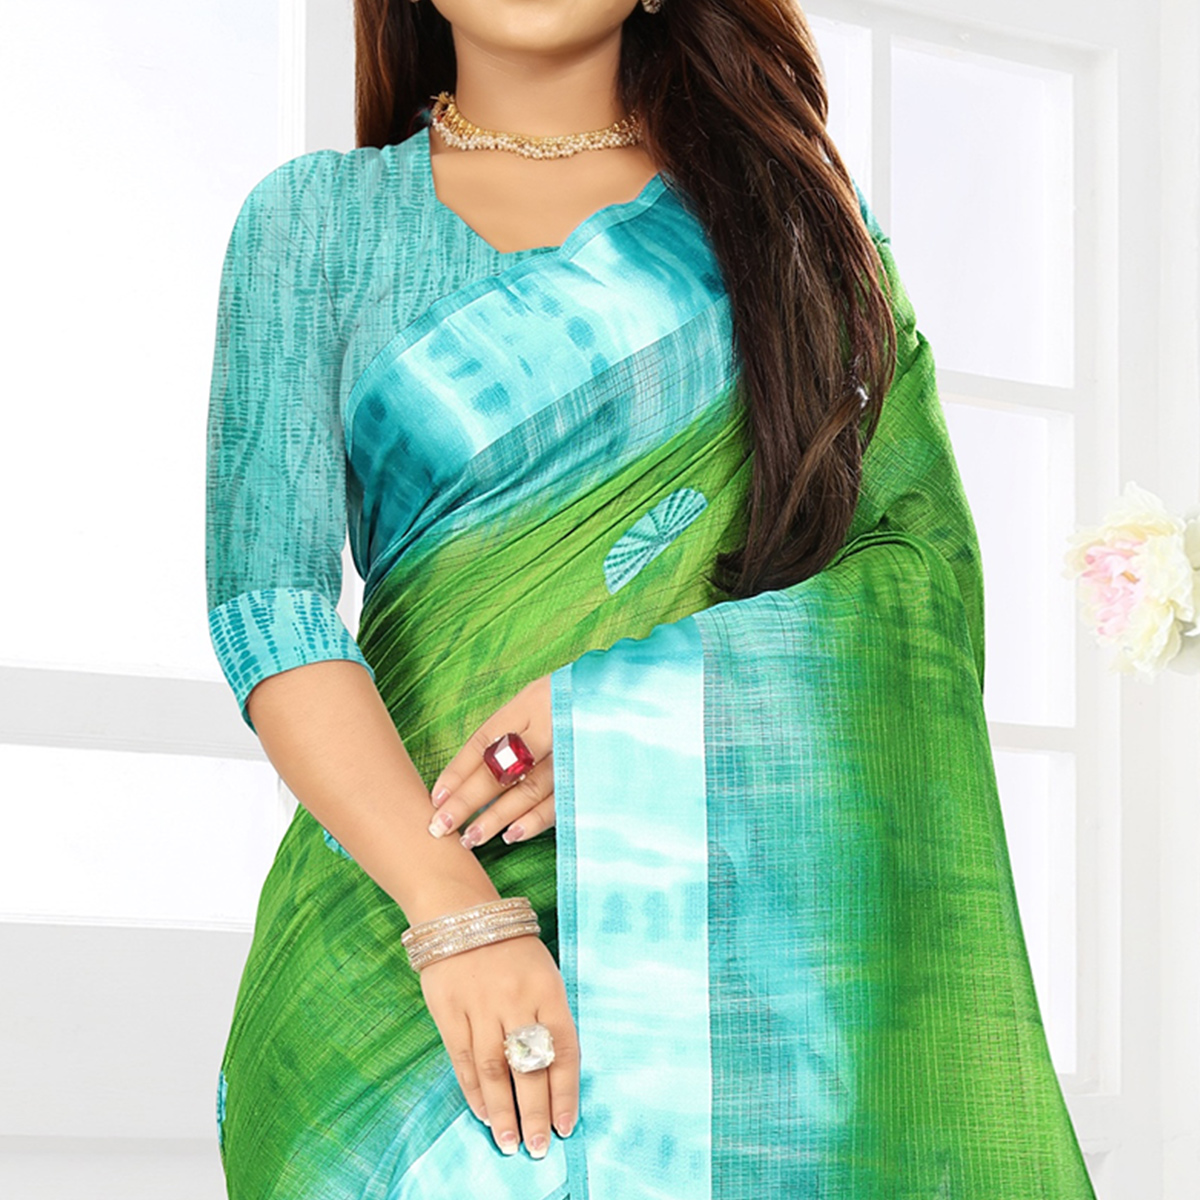 Sensational Green Colored Casual Wear Floral Printed Linen Saree With Satin Patta Border